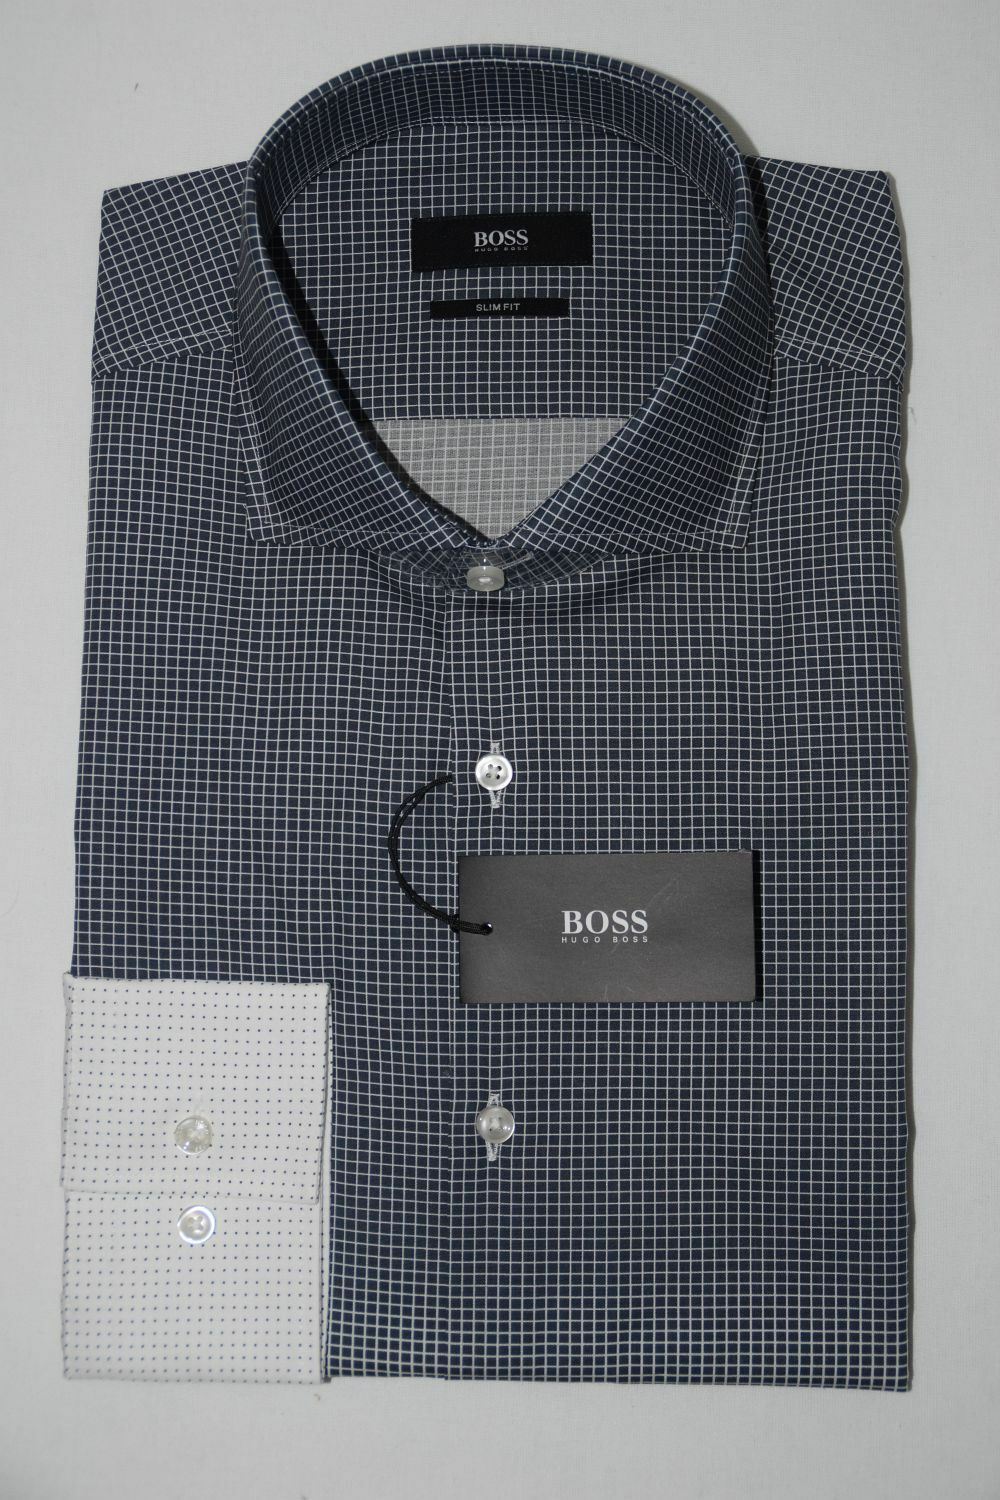 HUGO BOSS BUSINESSHEMD, Mod. Jason, Gr. 40, Slim Fit, Dark Grau